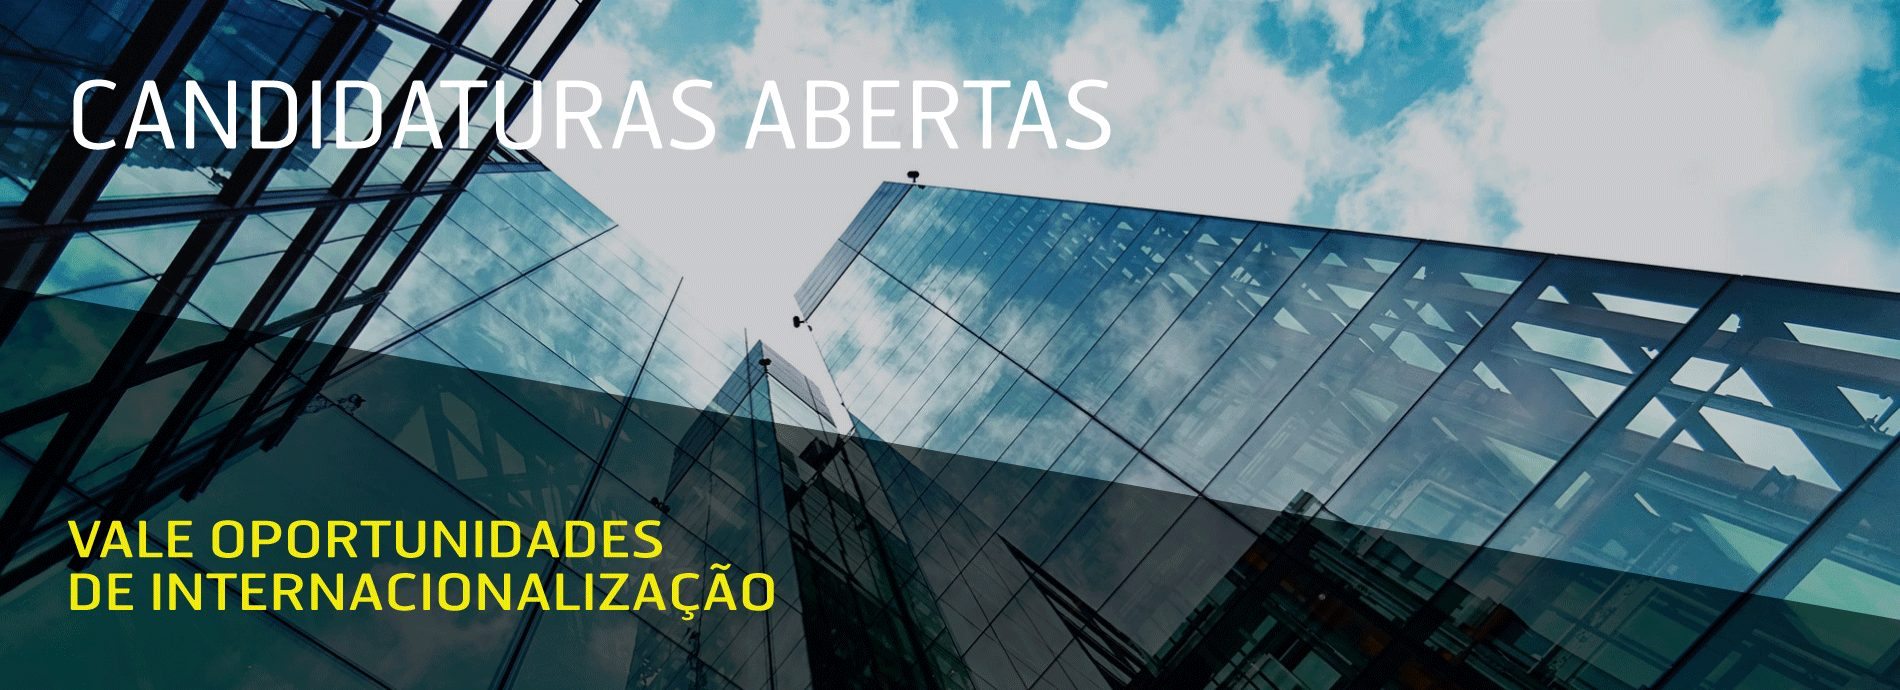 banners.ahptus.valeoportunidade.v02